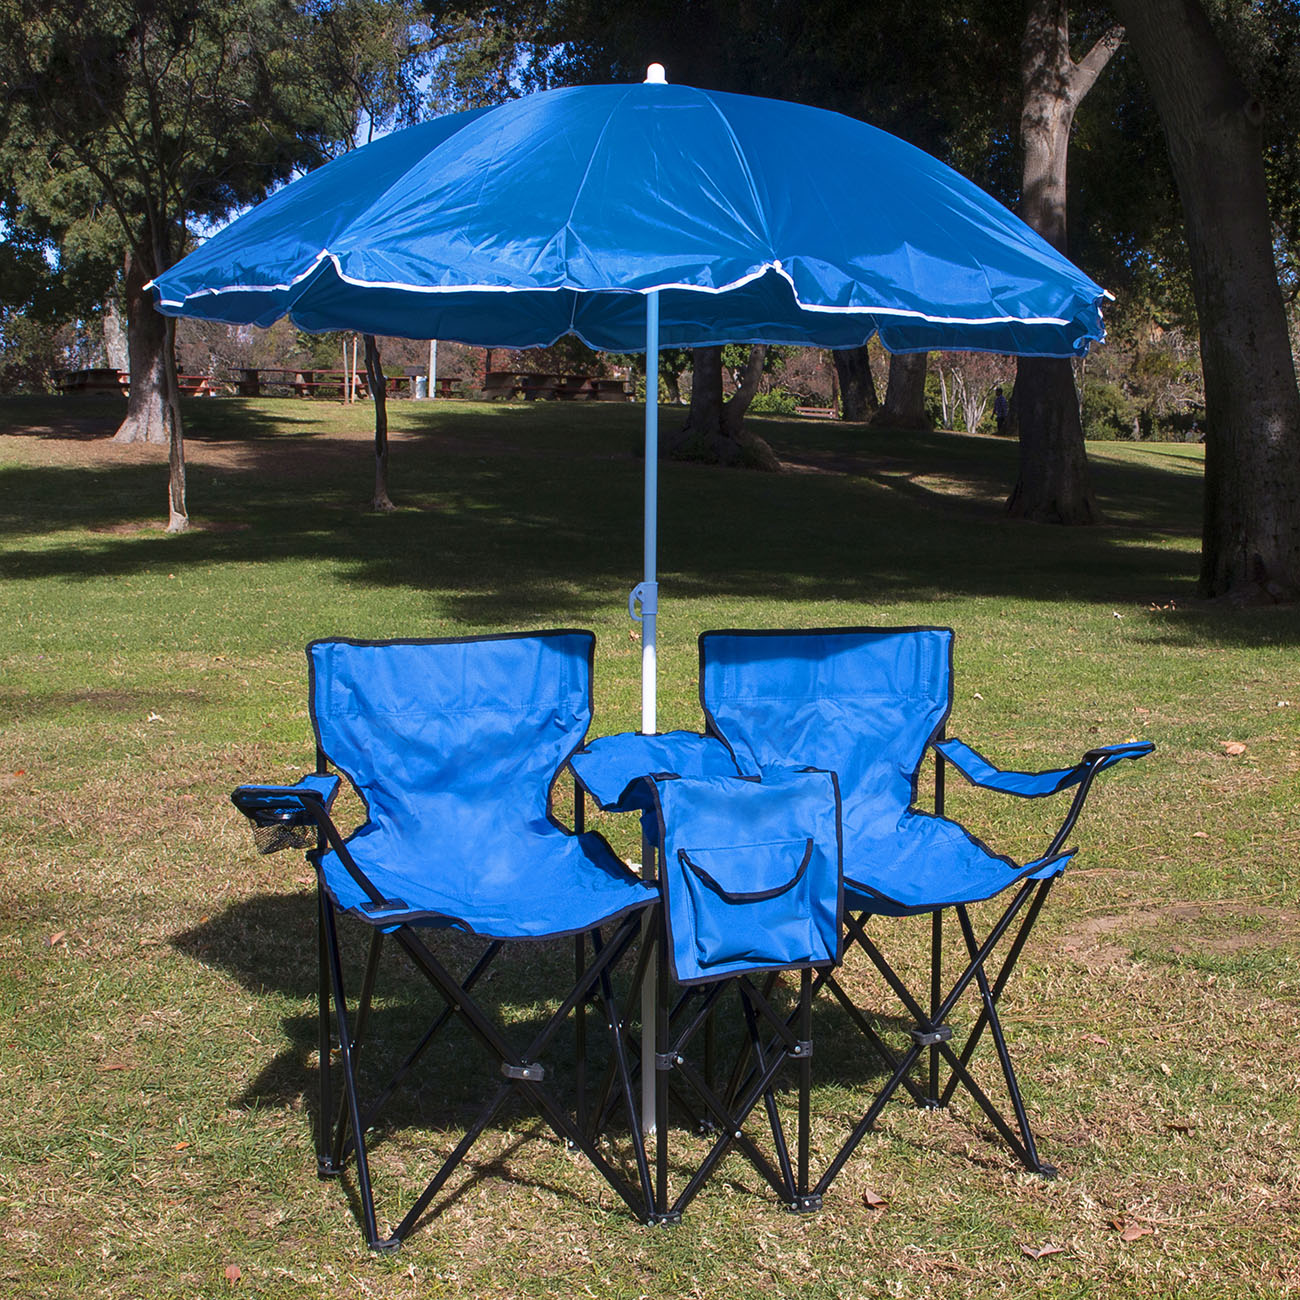 Picnic Fold Up Double Folding Chair w Umbrella Table Cooler Beach Camping Cha